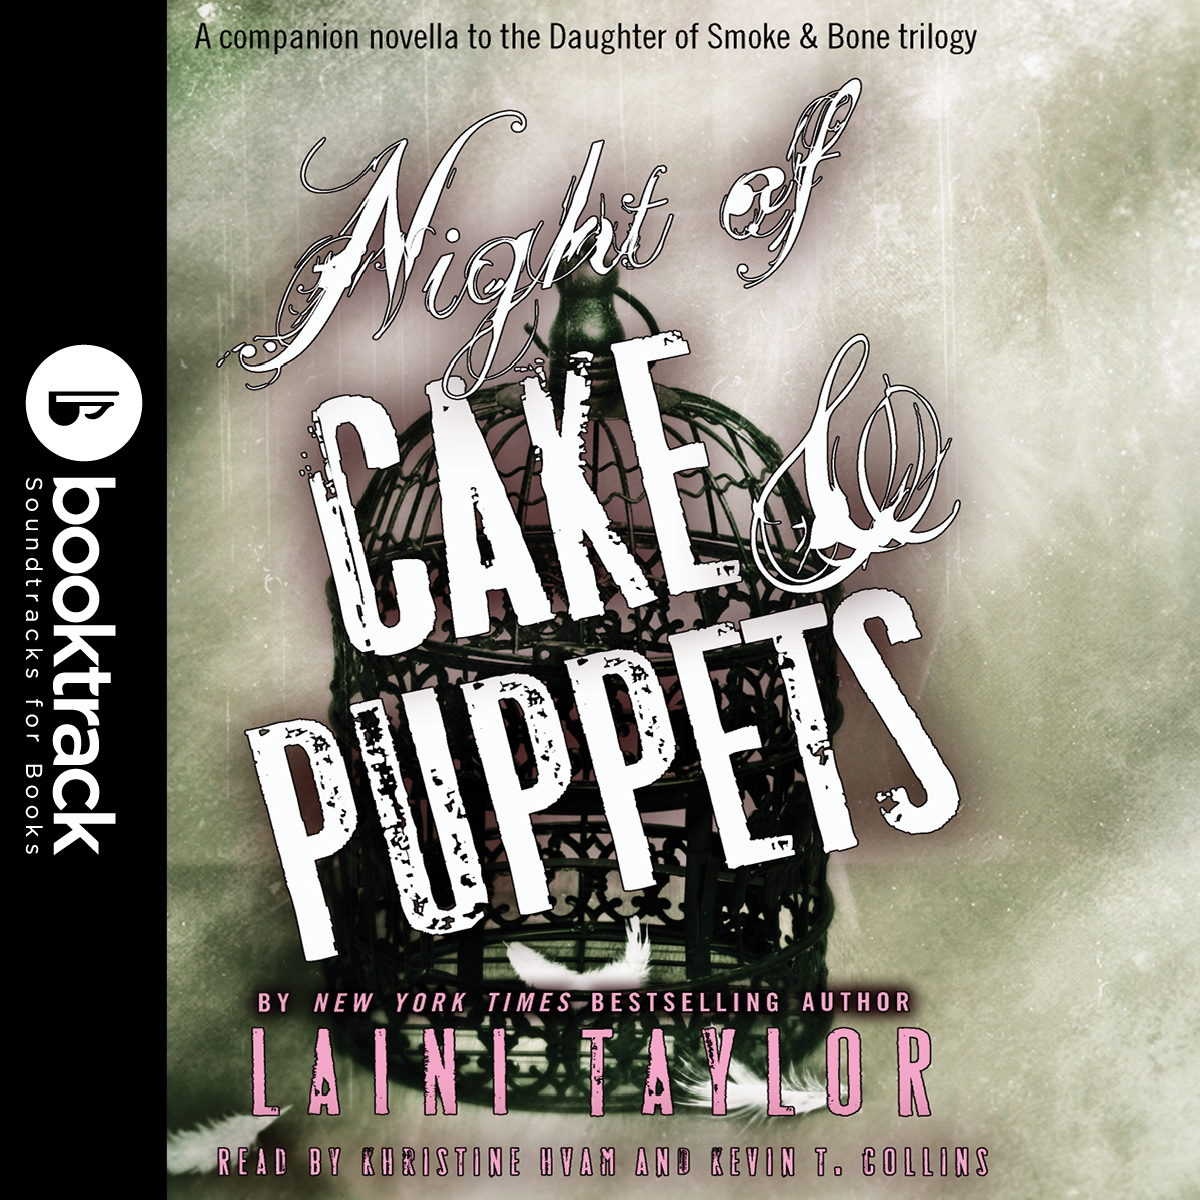 Printable Night of Cake & Puppets: Booktrack Edition Audiobook Cover Art